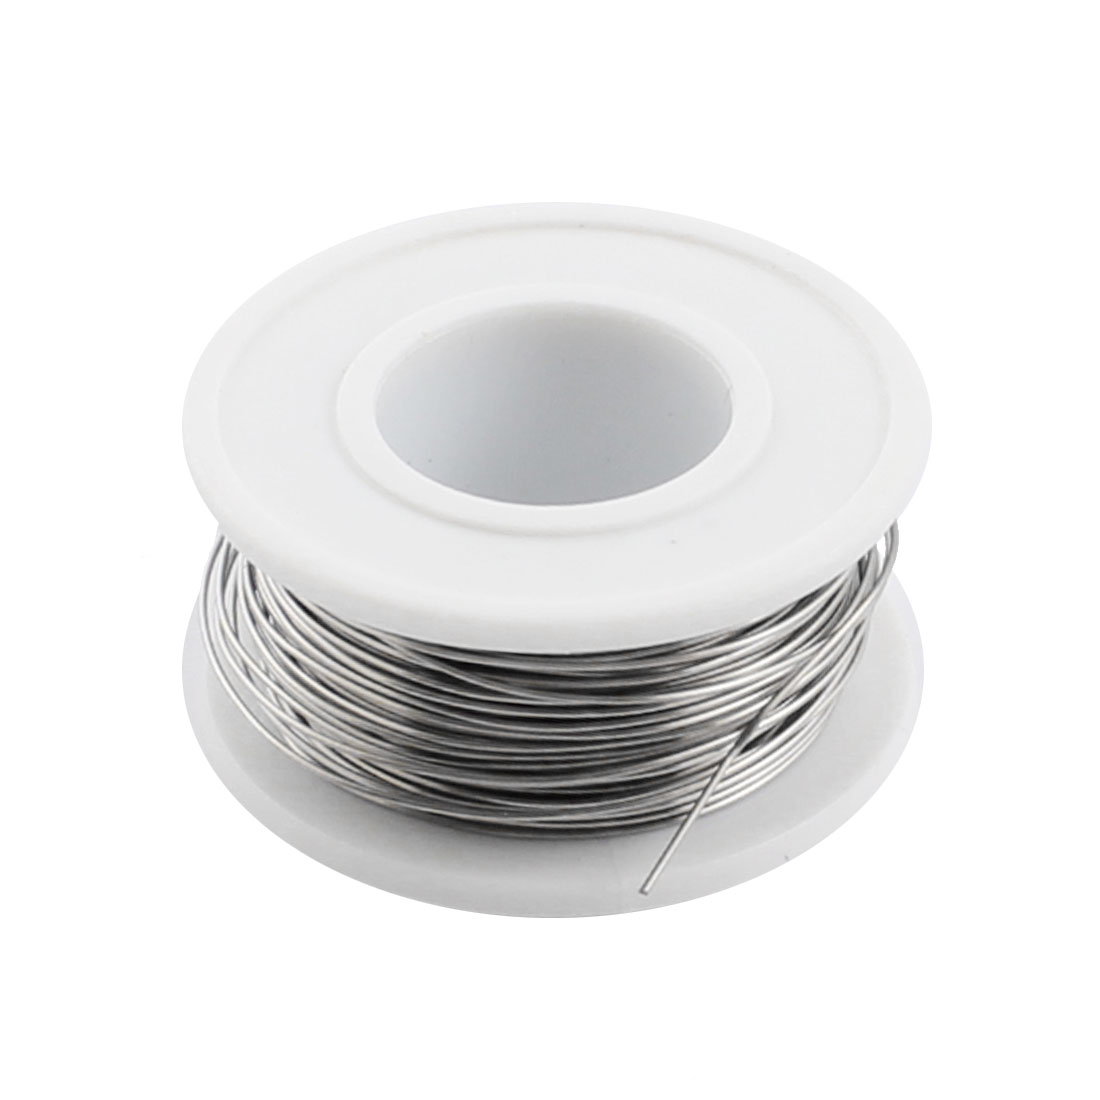 0.5mm Diameter AWG24 15meter 50ft Long Nichrome Resistance Heating Coils Resistor Wire